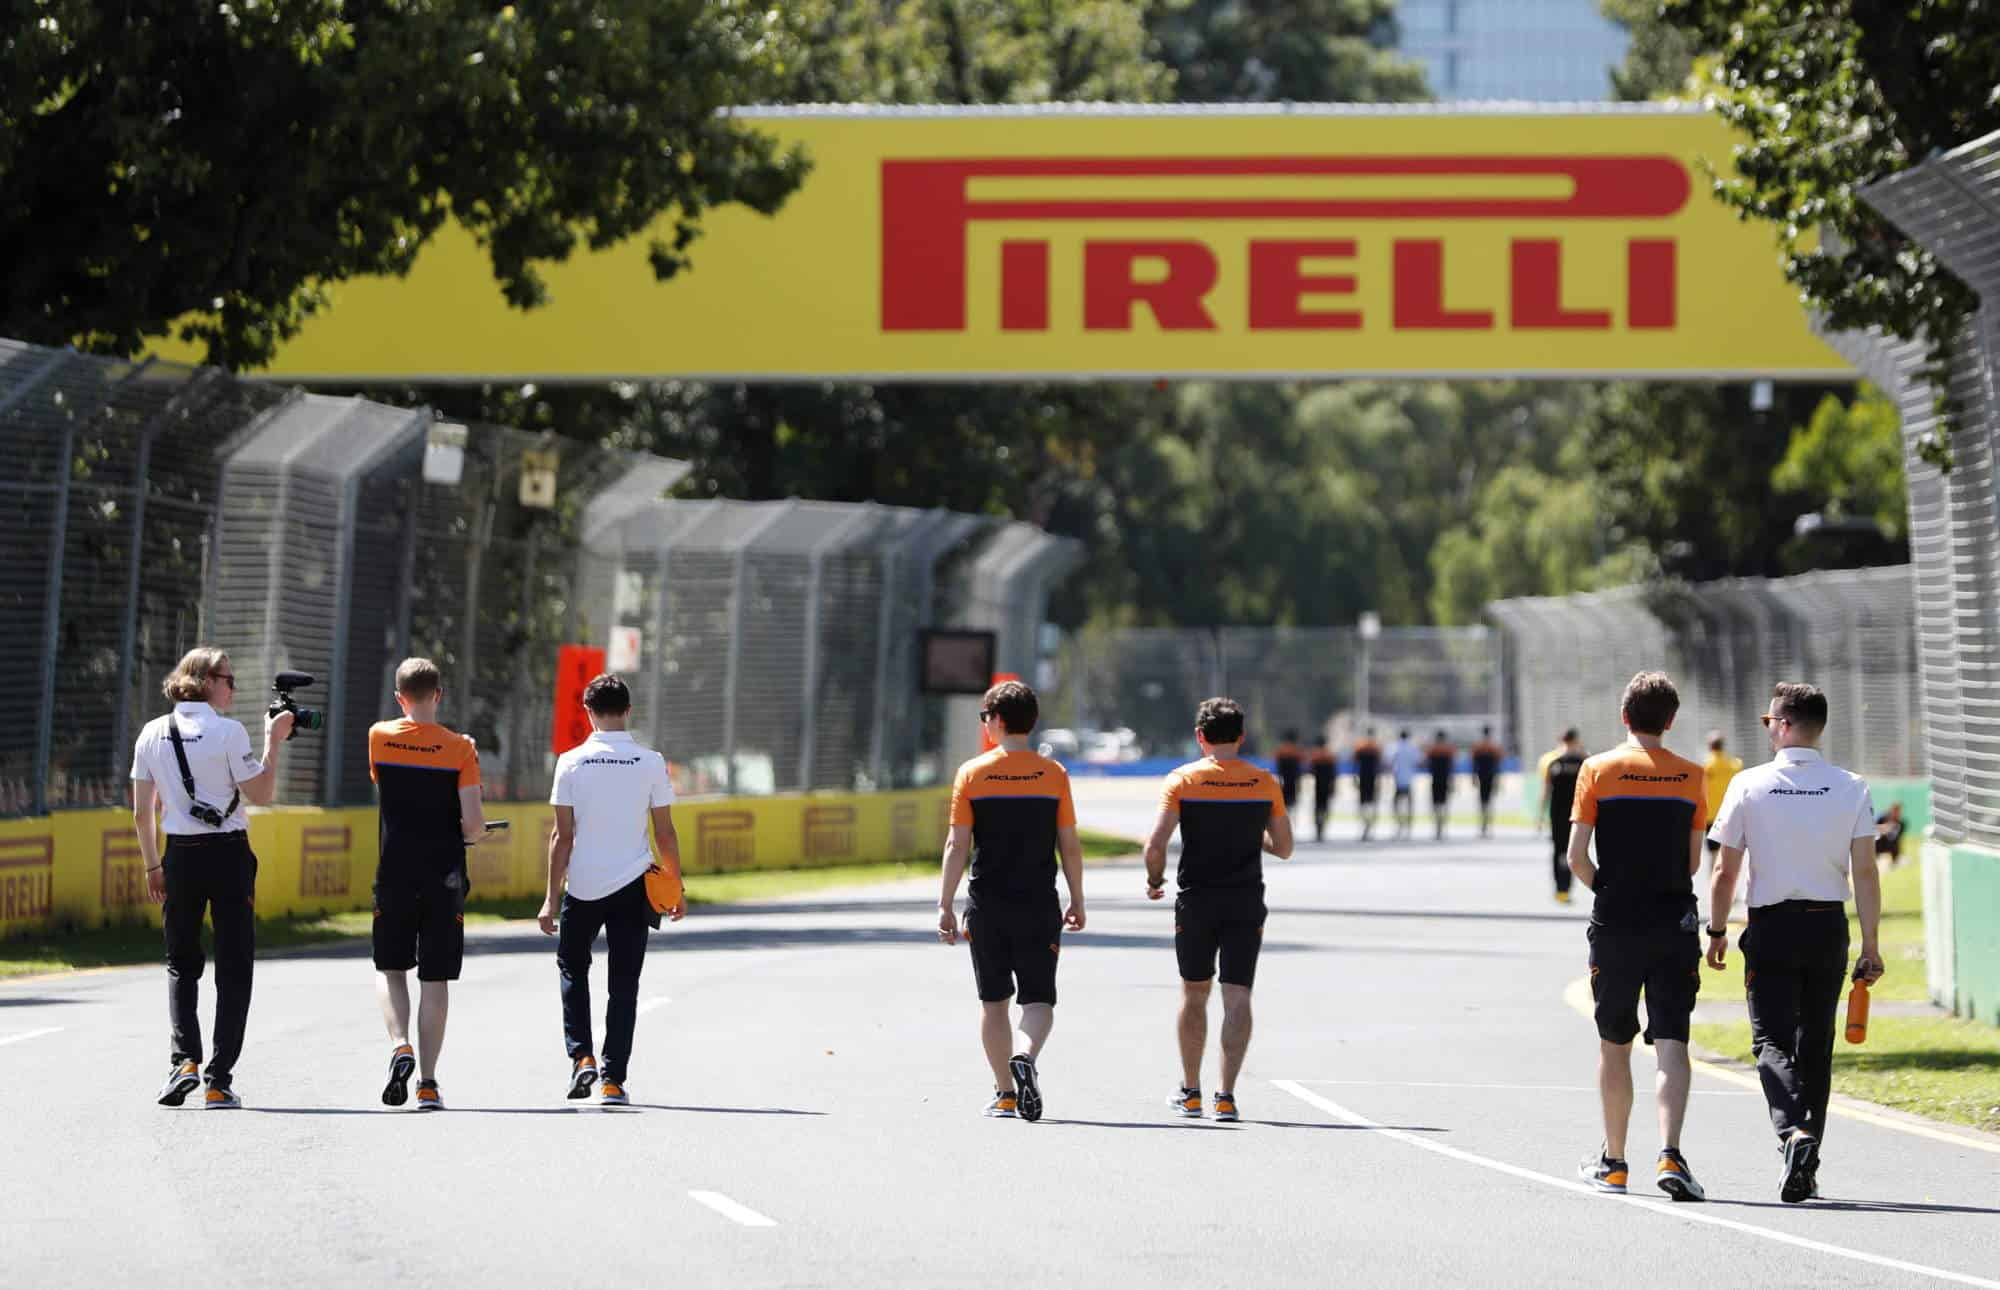 Australian GP F1 2020 on track McLaren team members Photo Pirelli